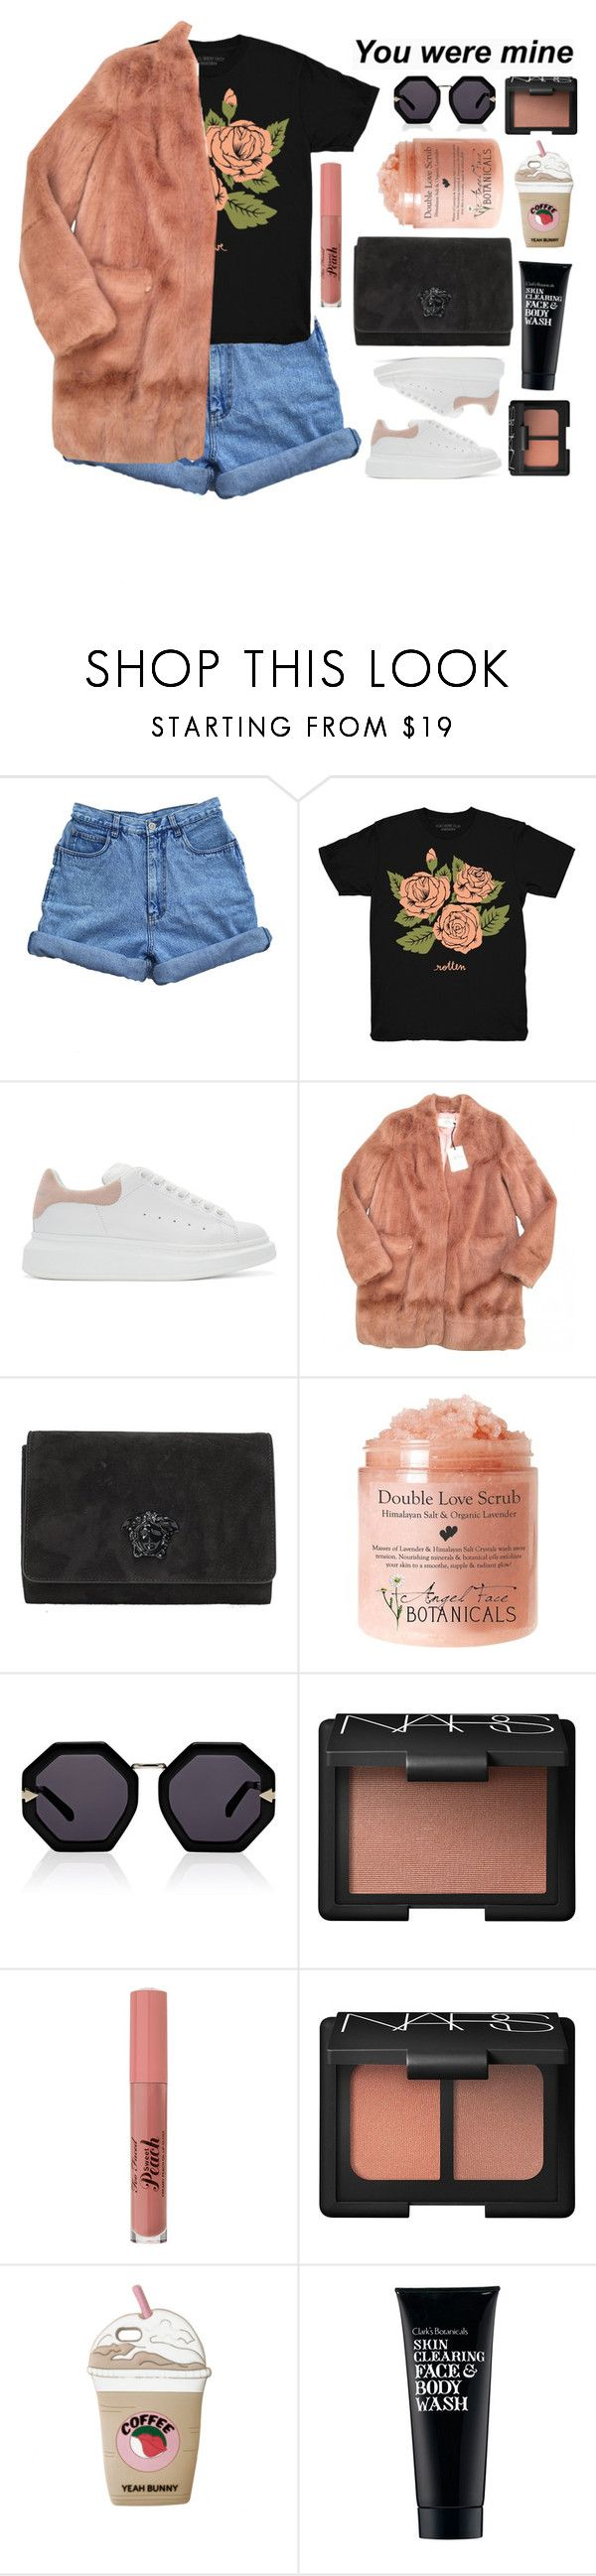 """Untitled #2833"" by tacoxcat ❤ liked on Polyvore featuring Bill Blass, Stay Home Club, Alexander McQueen, Urbancode, Versace, Karen Walker, NARS Cosmetics and Clark's Botanicals"